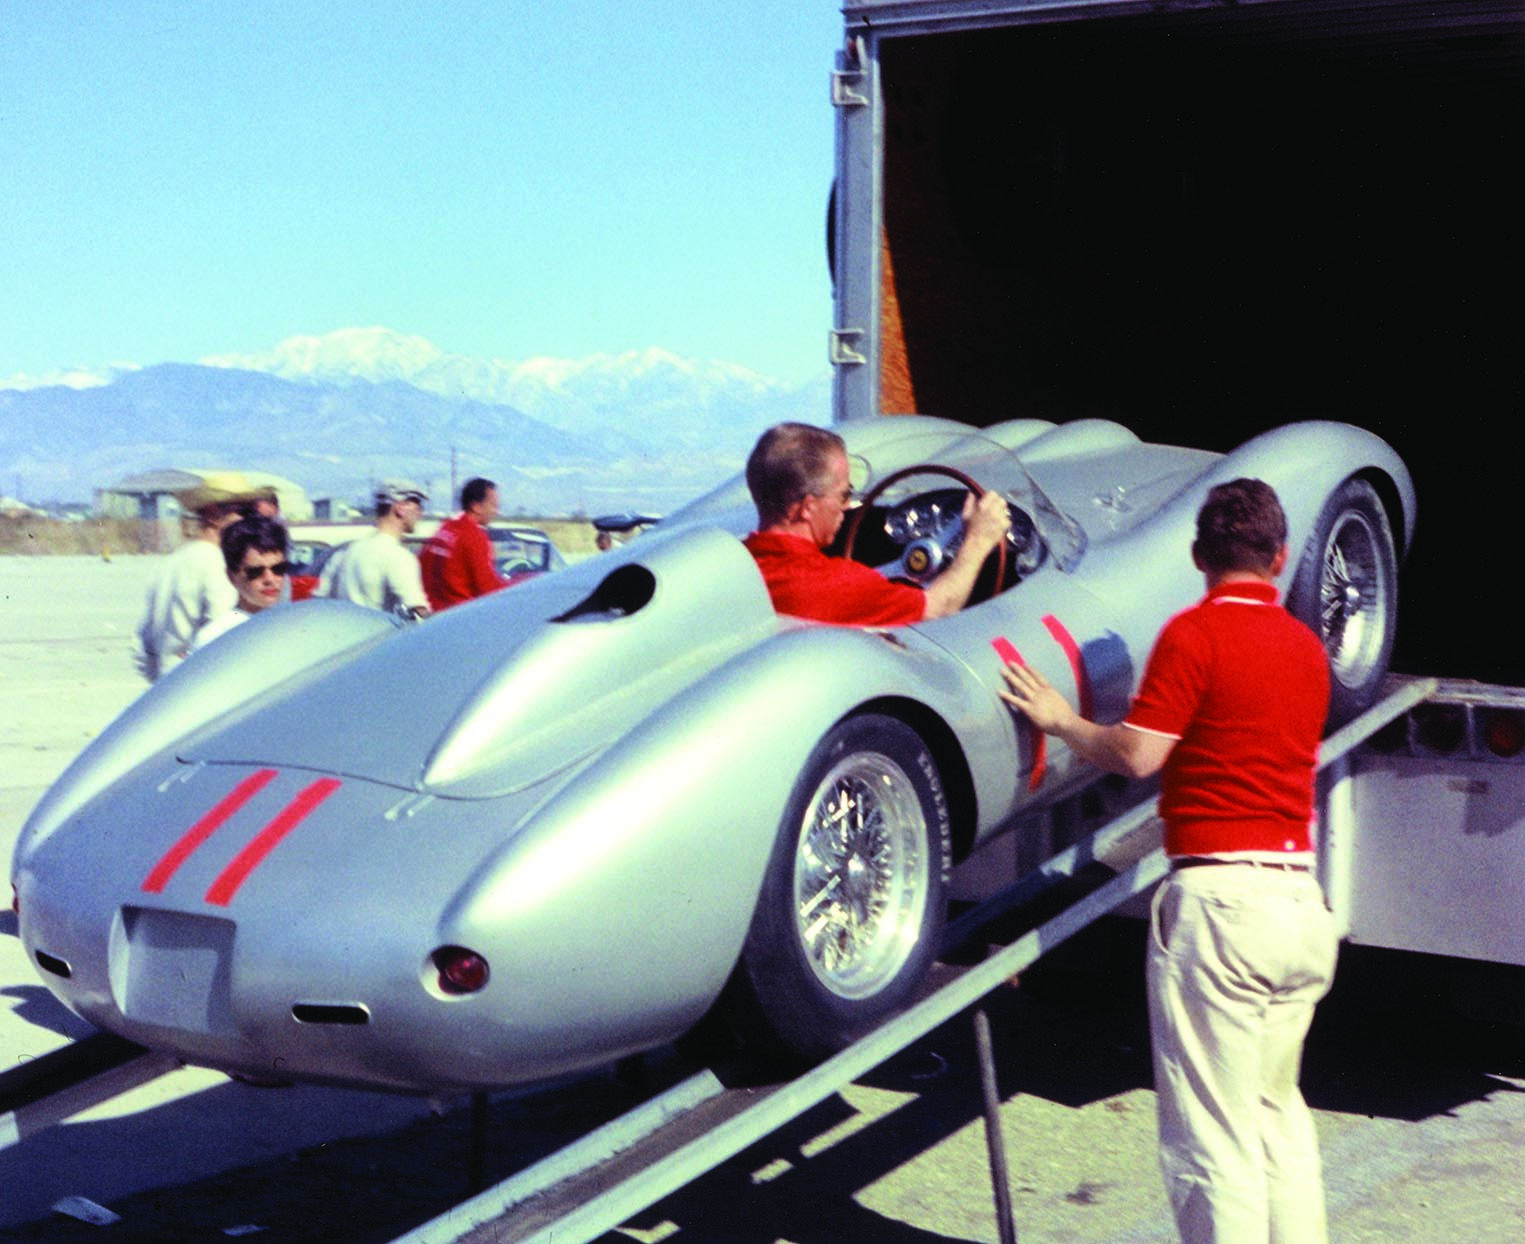 1957 Ferrari Testa Rossa unloading from race trailer